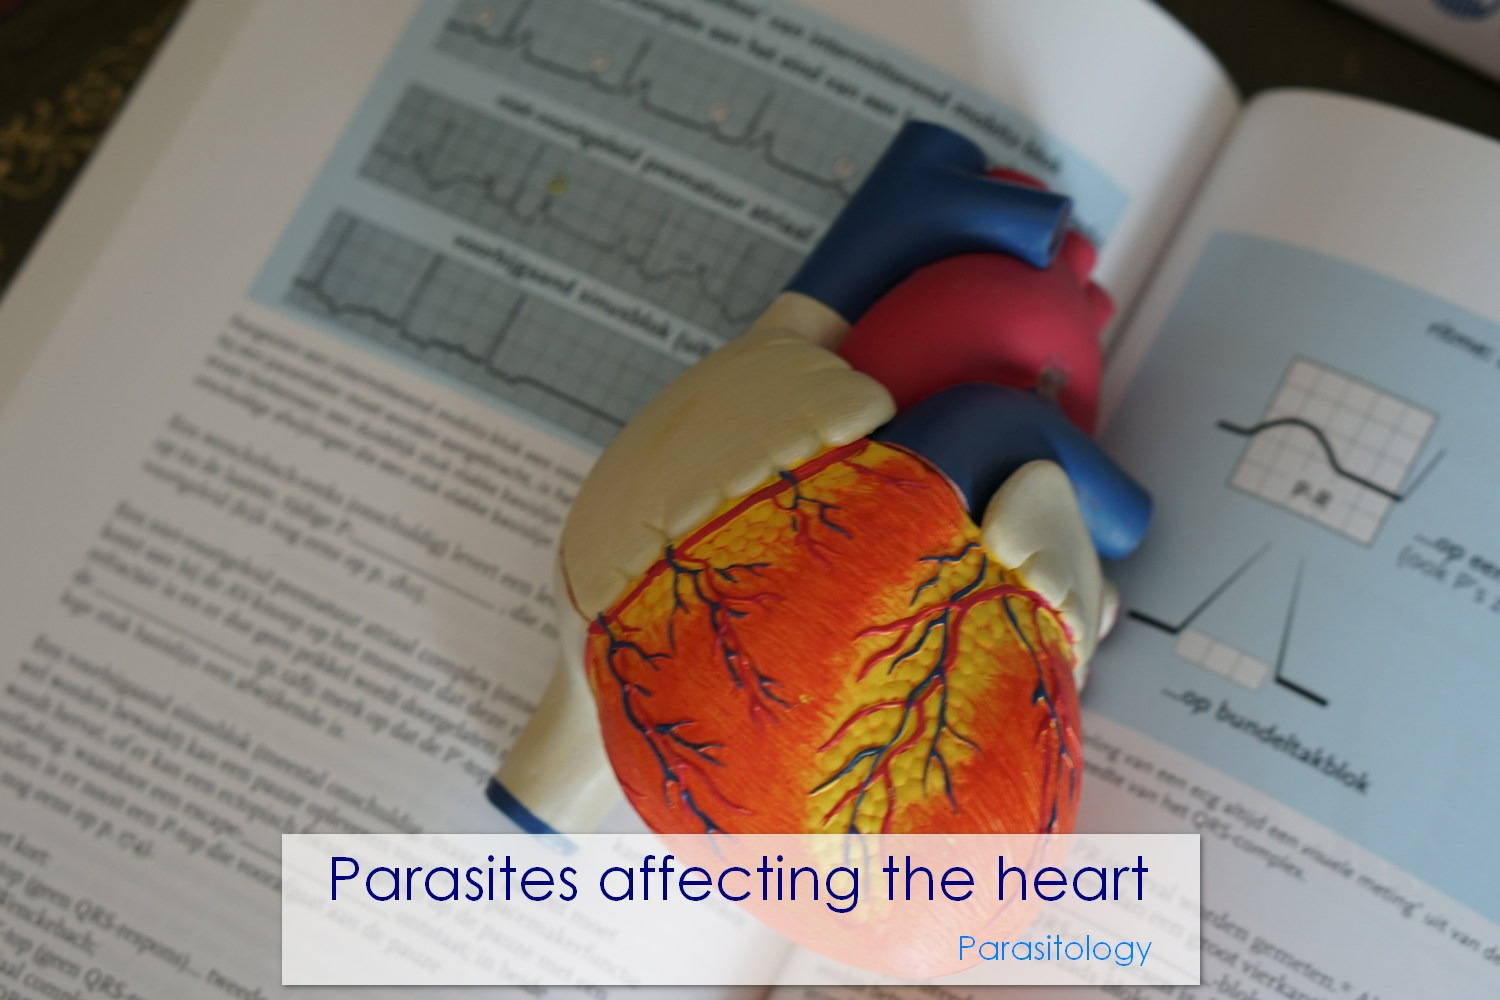 Parasites affecting the heart